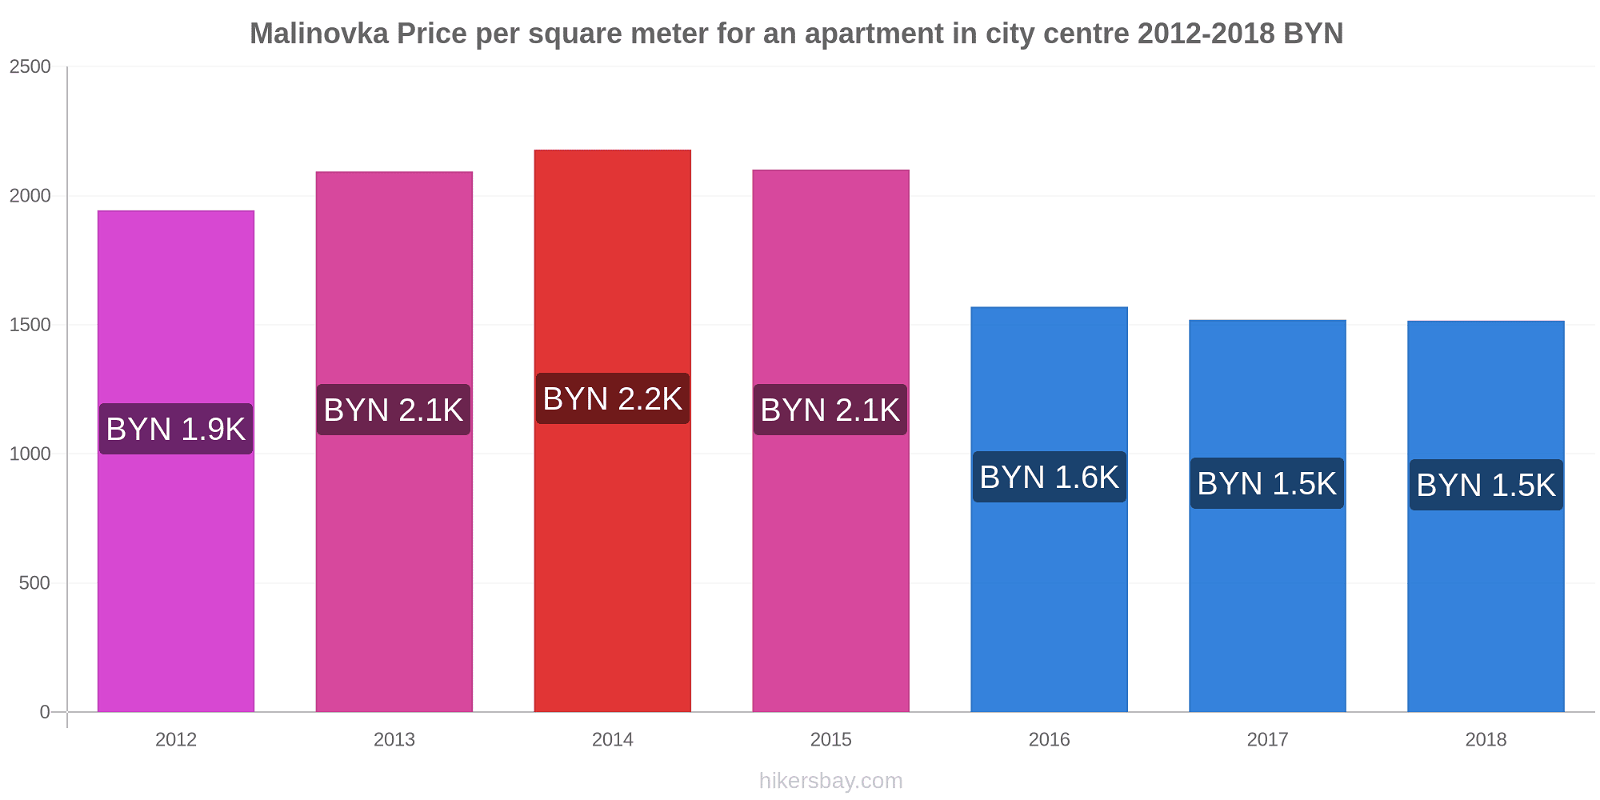 Malinovka price changes Price per square meter for an apartment in city centre hikersbay.com